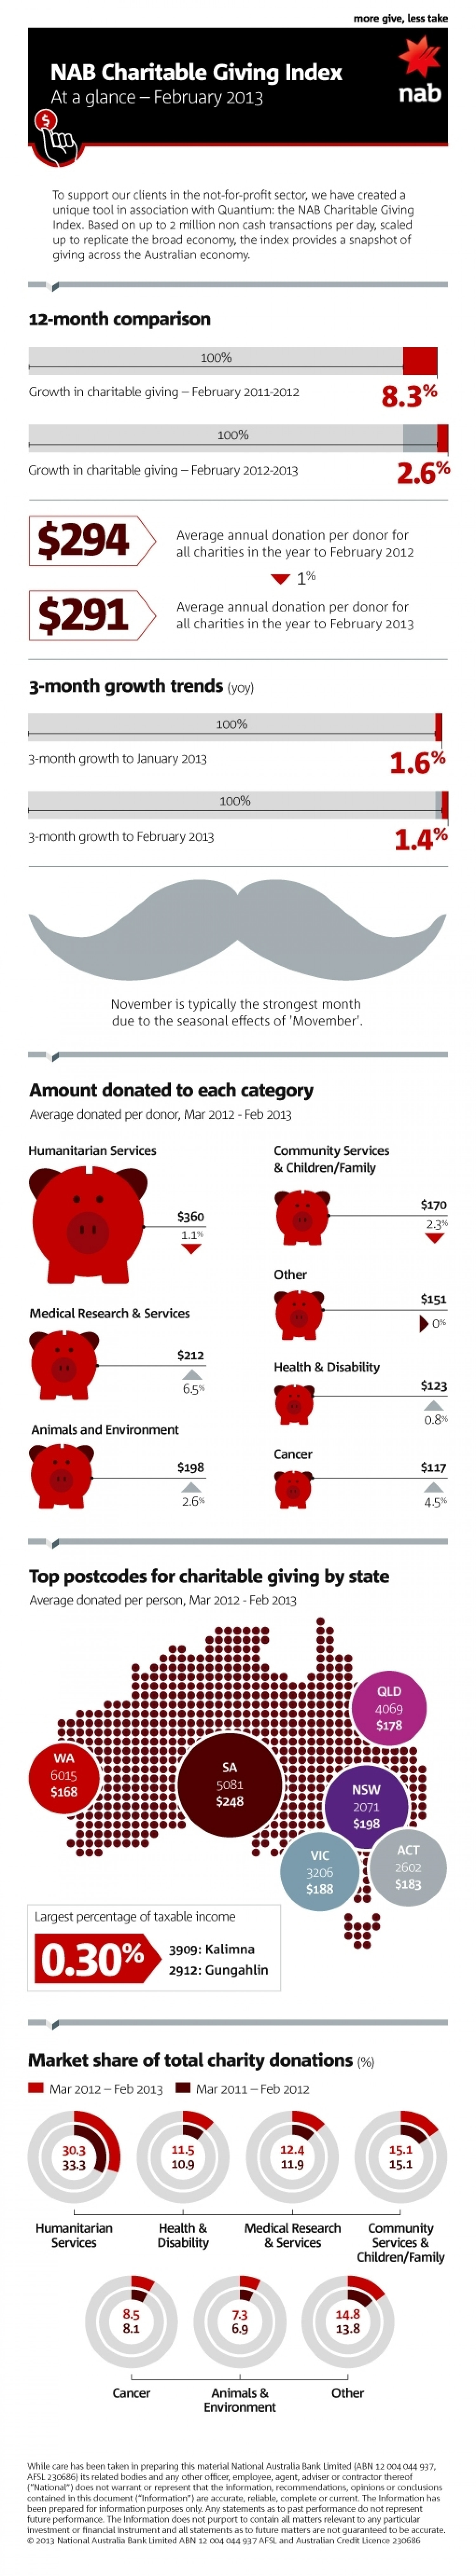 NAB Charitable Giving Index - February 2013 Infographic